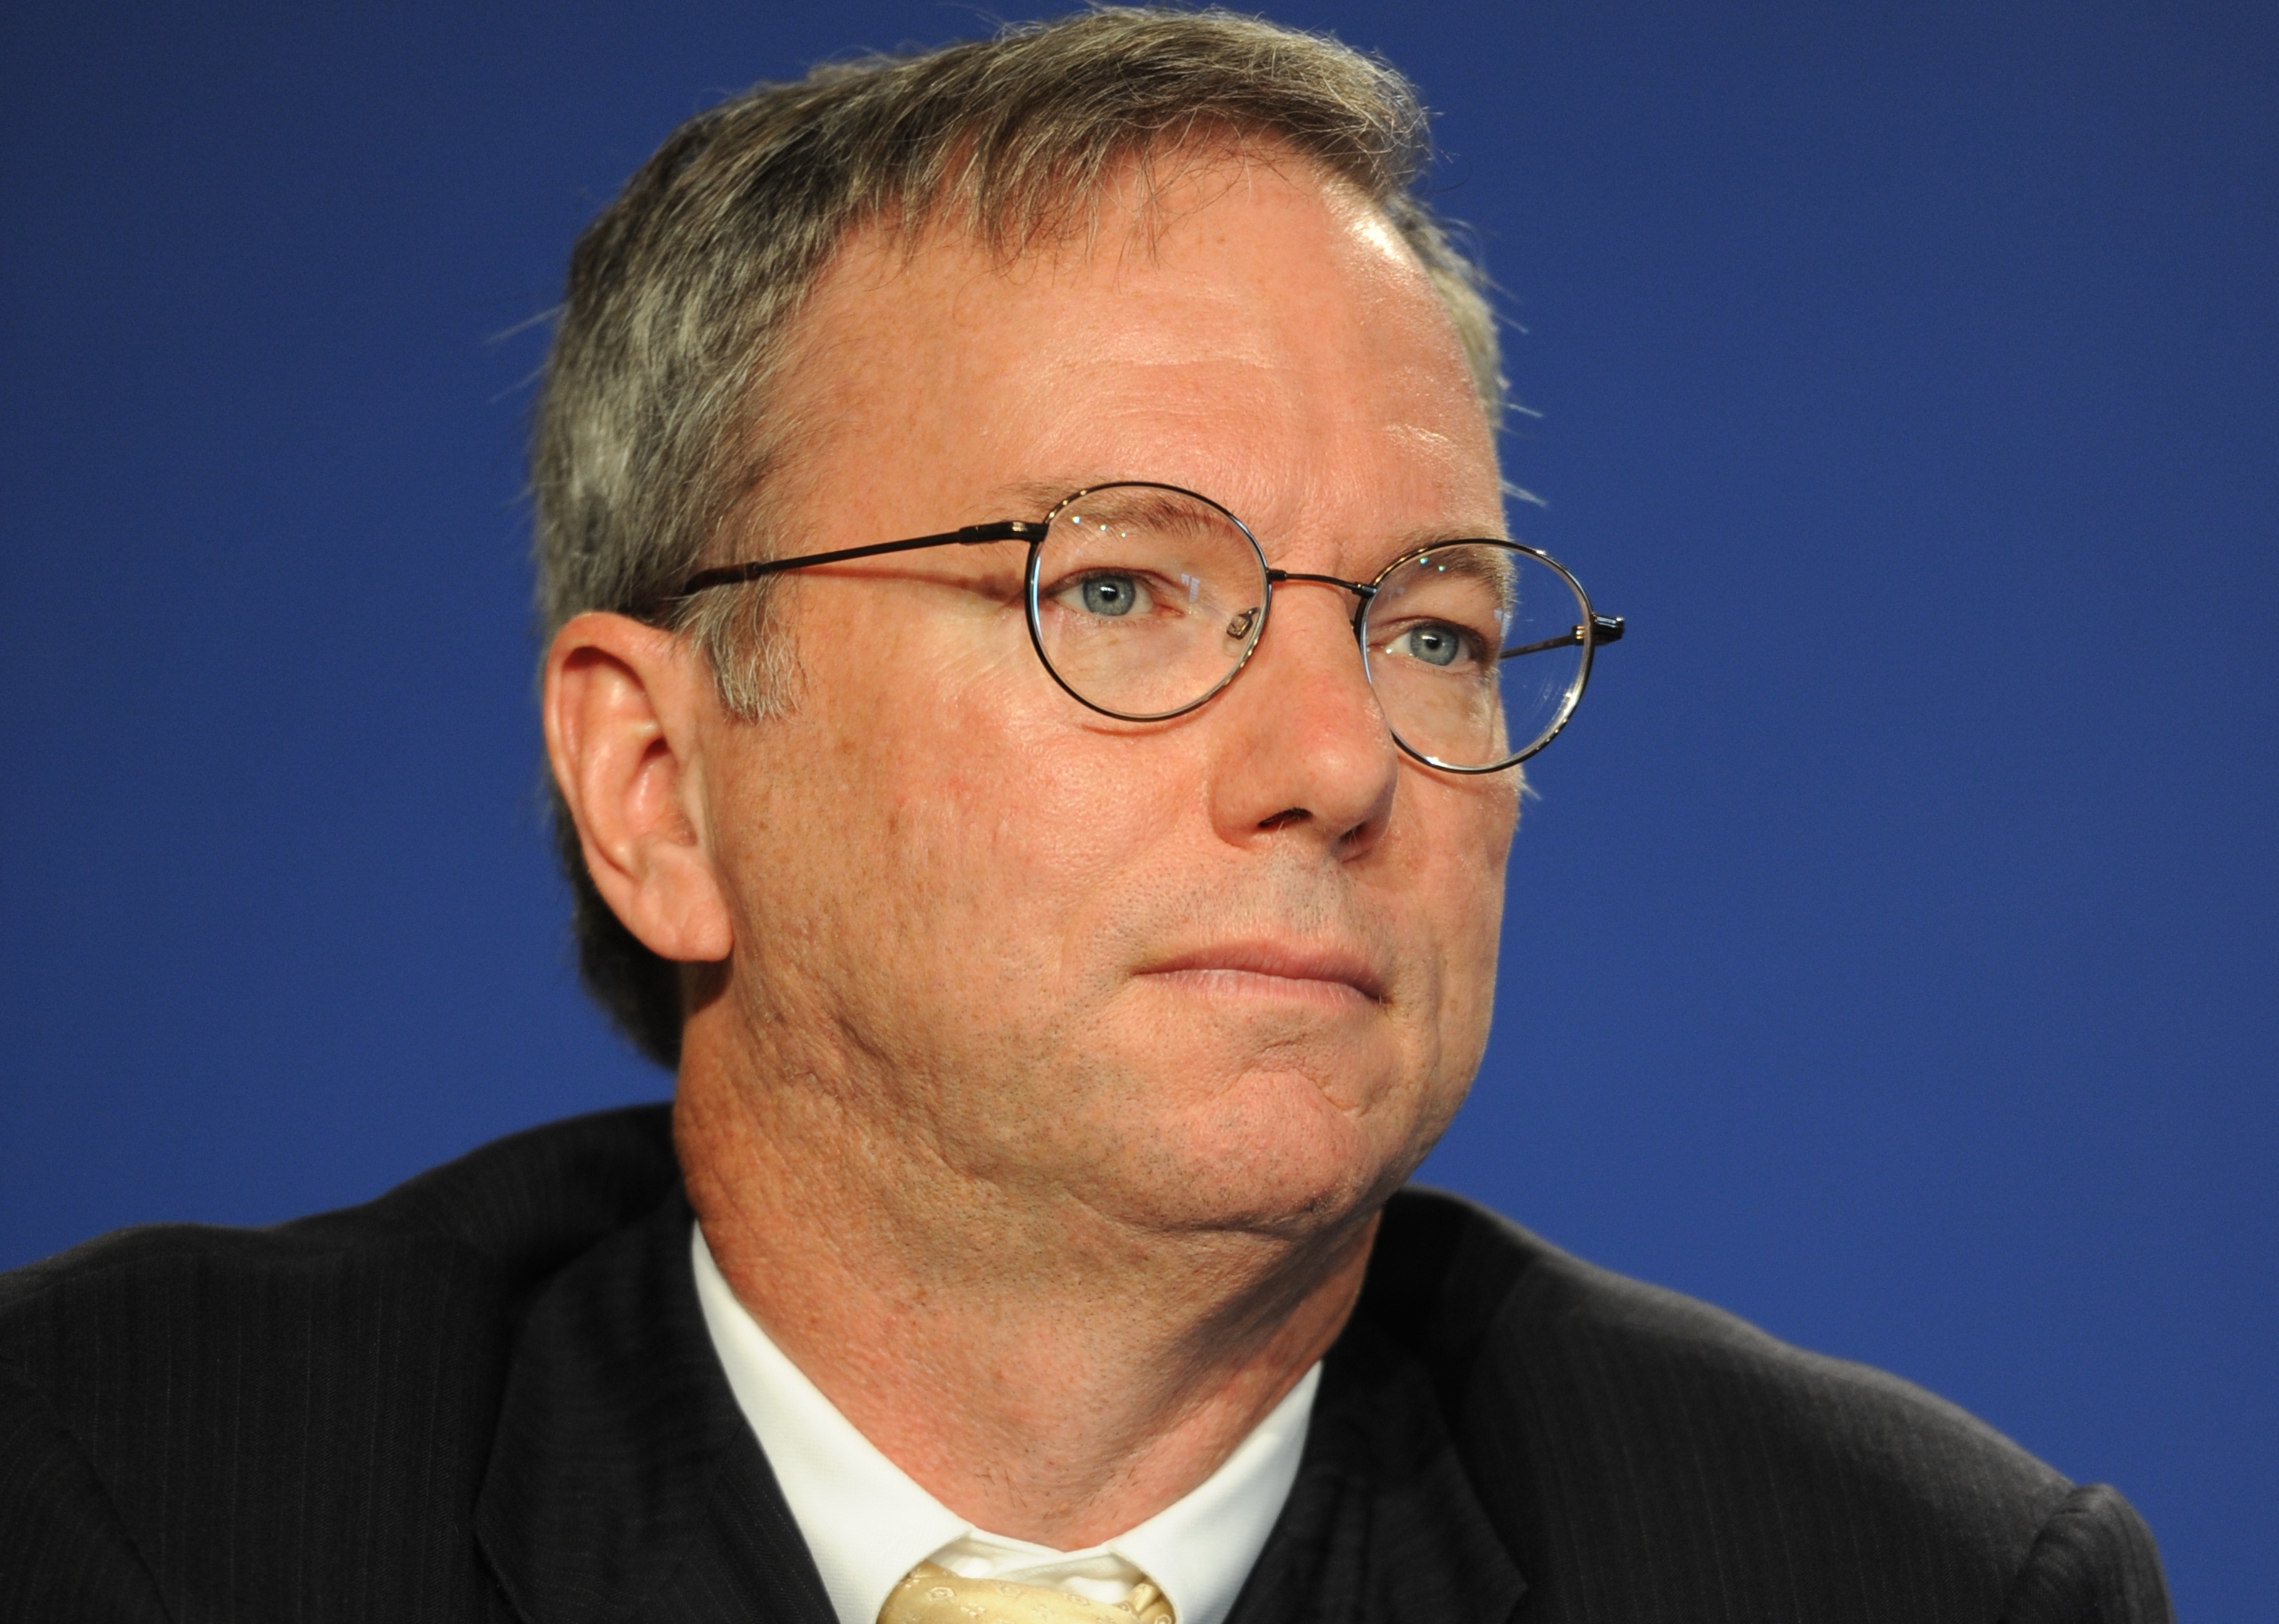 Eric_Schmidt_at_the_37th_G8_Summit_in_Deauville_037